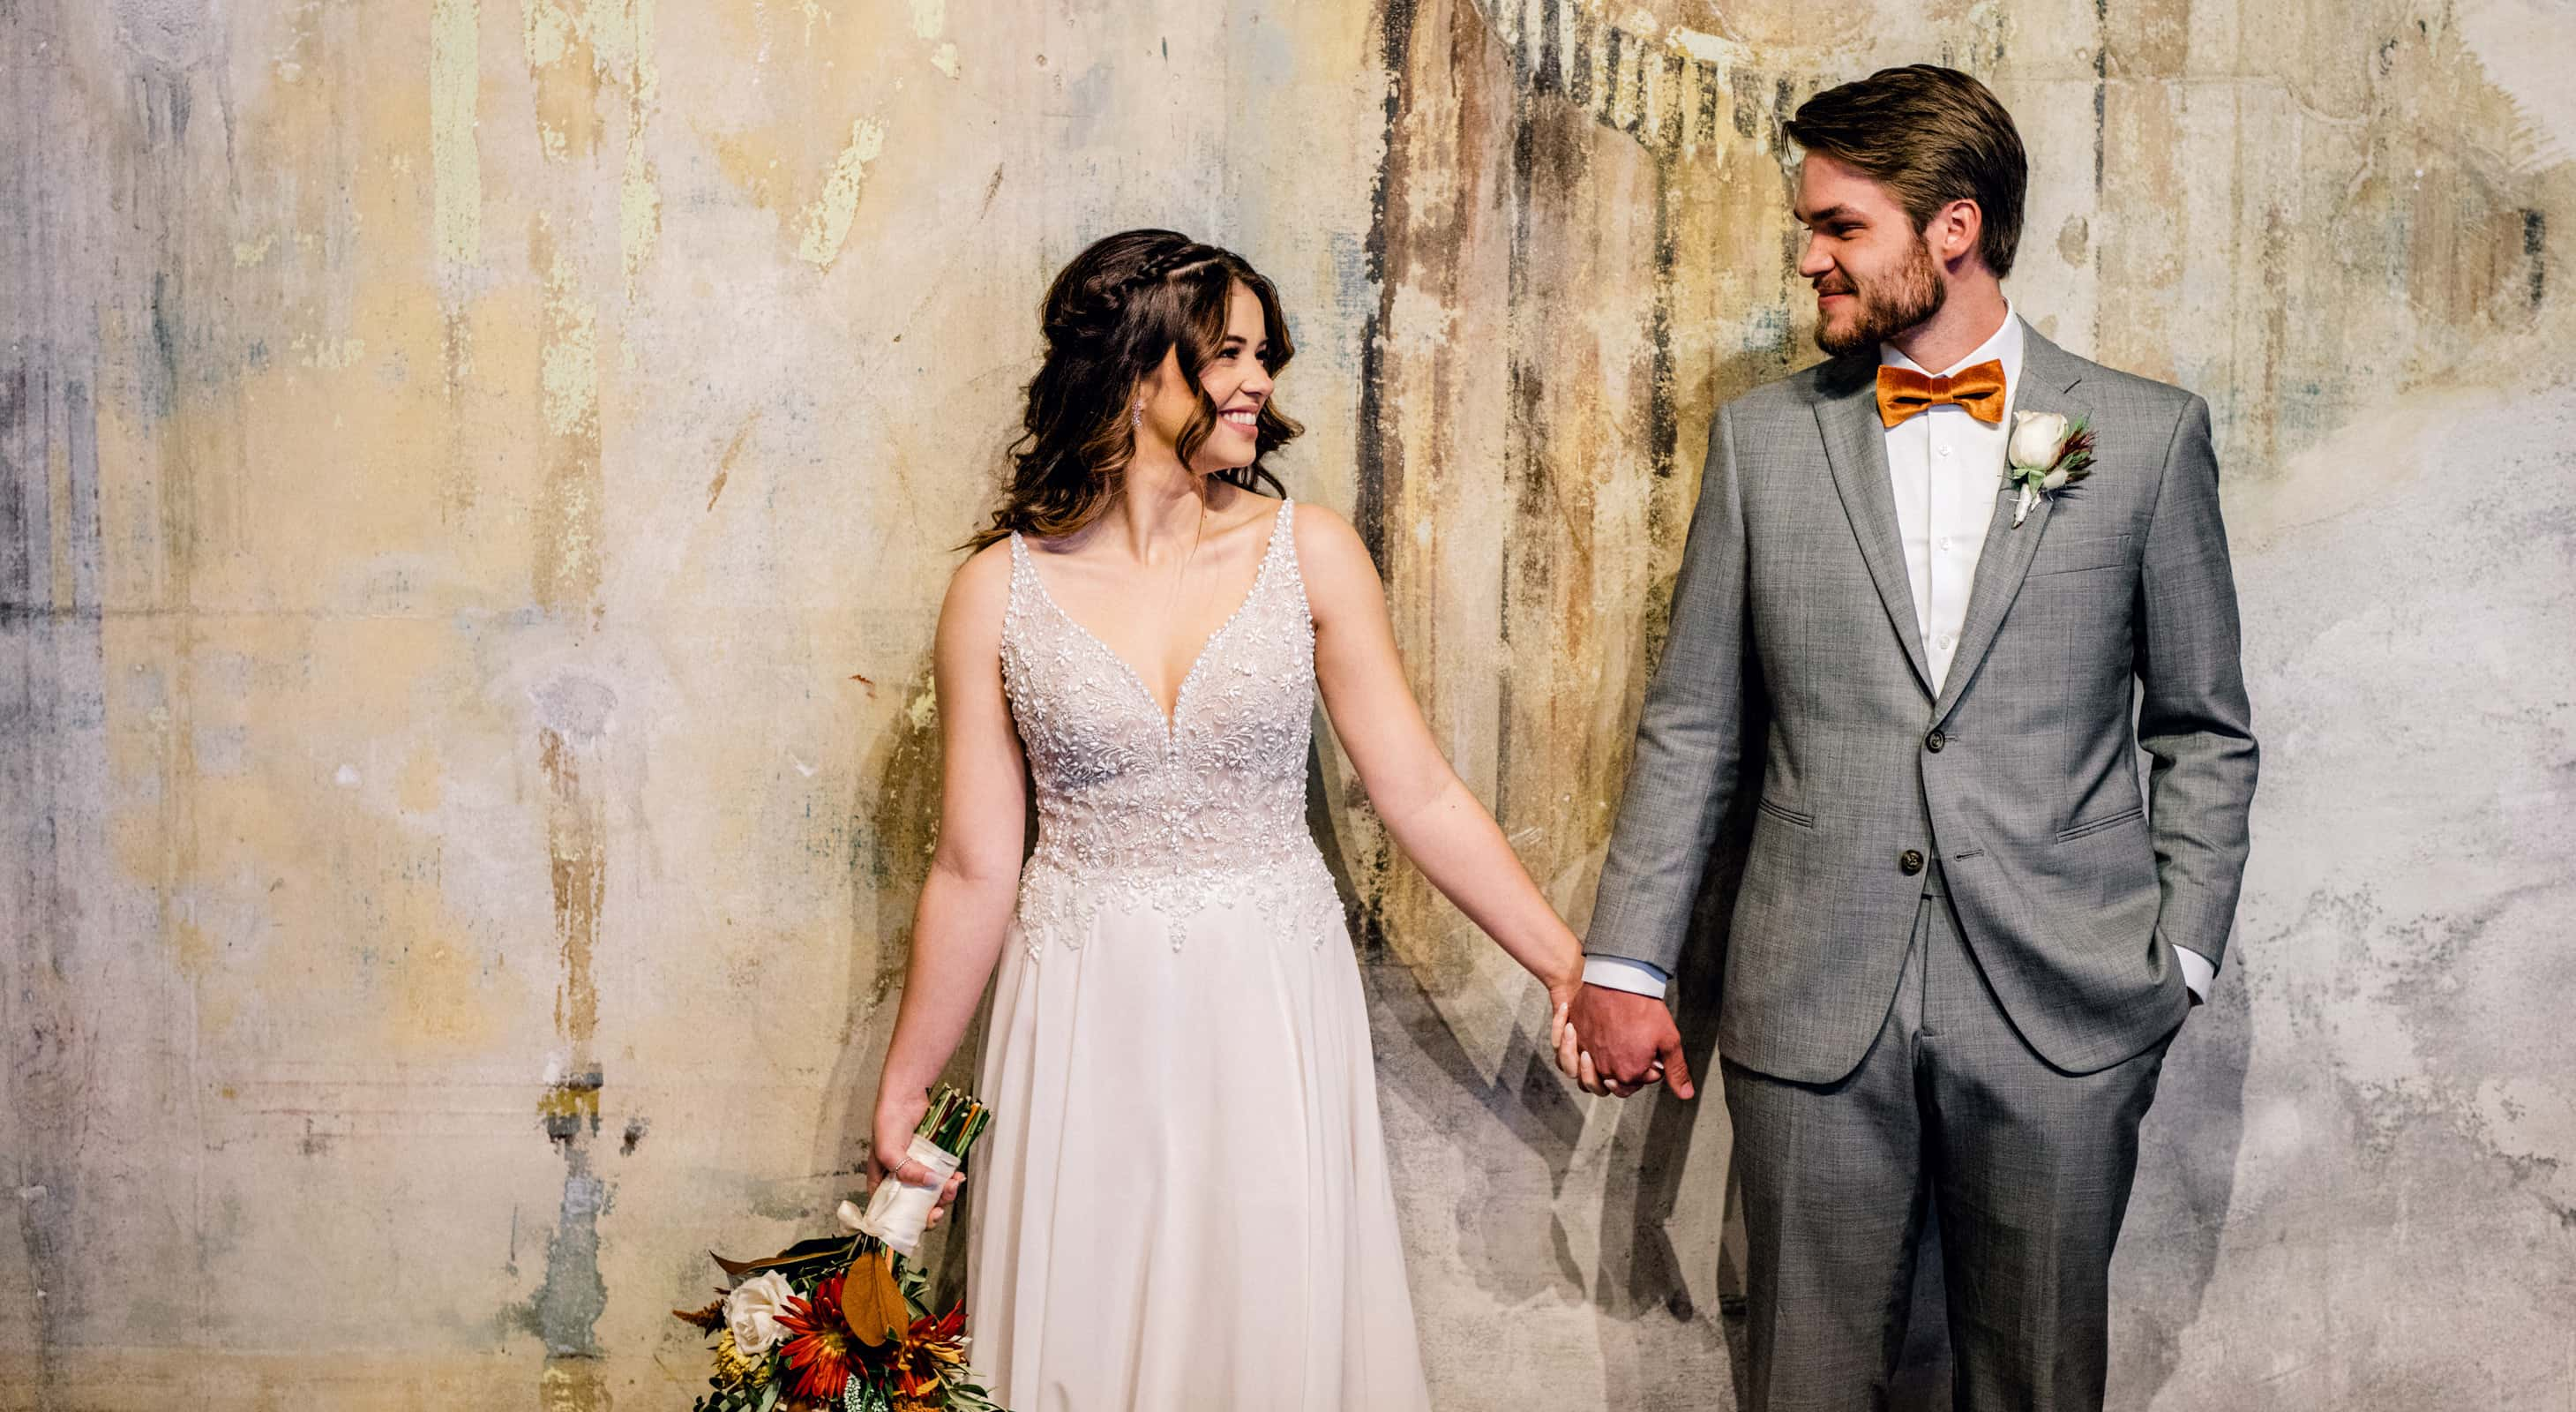 A bride and groom stand in front of a industrial concrete wall